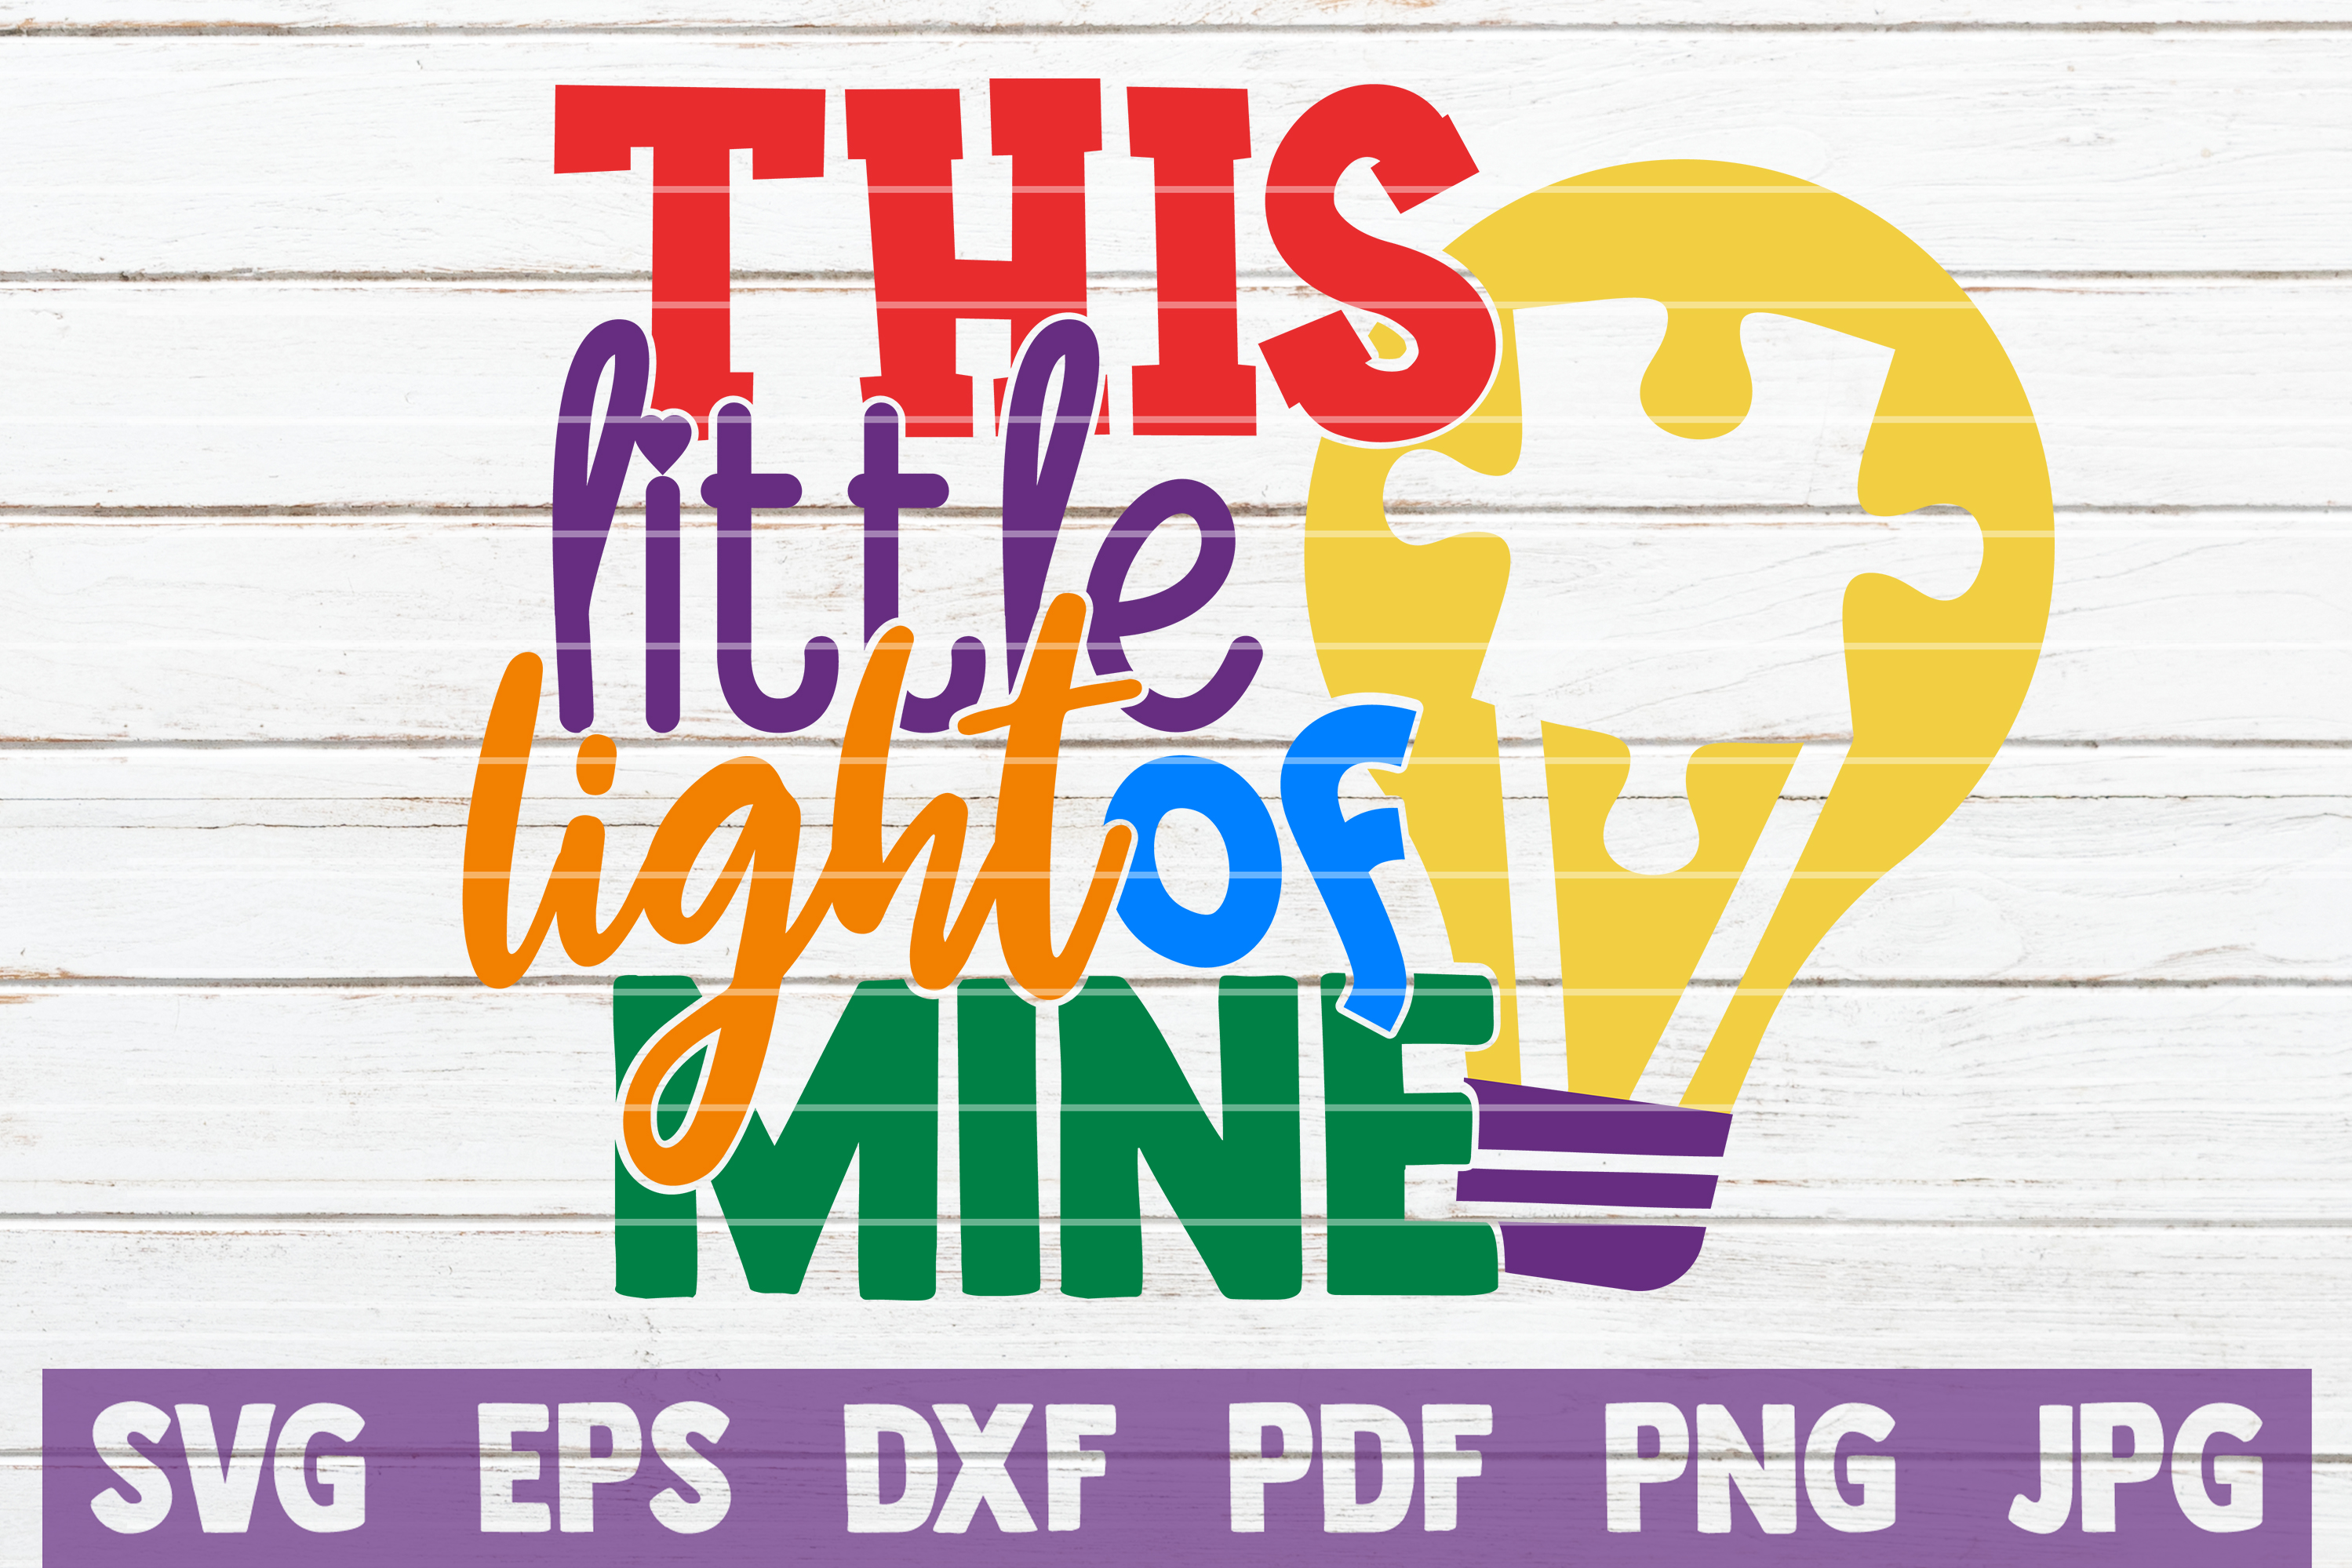 Download Free This Little Light Of Mine Graphic By Mintymarshmallows for Cricut Explore, Silhouette and other cutting machines.